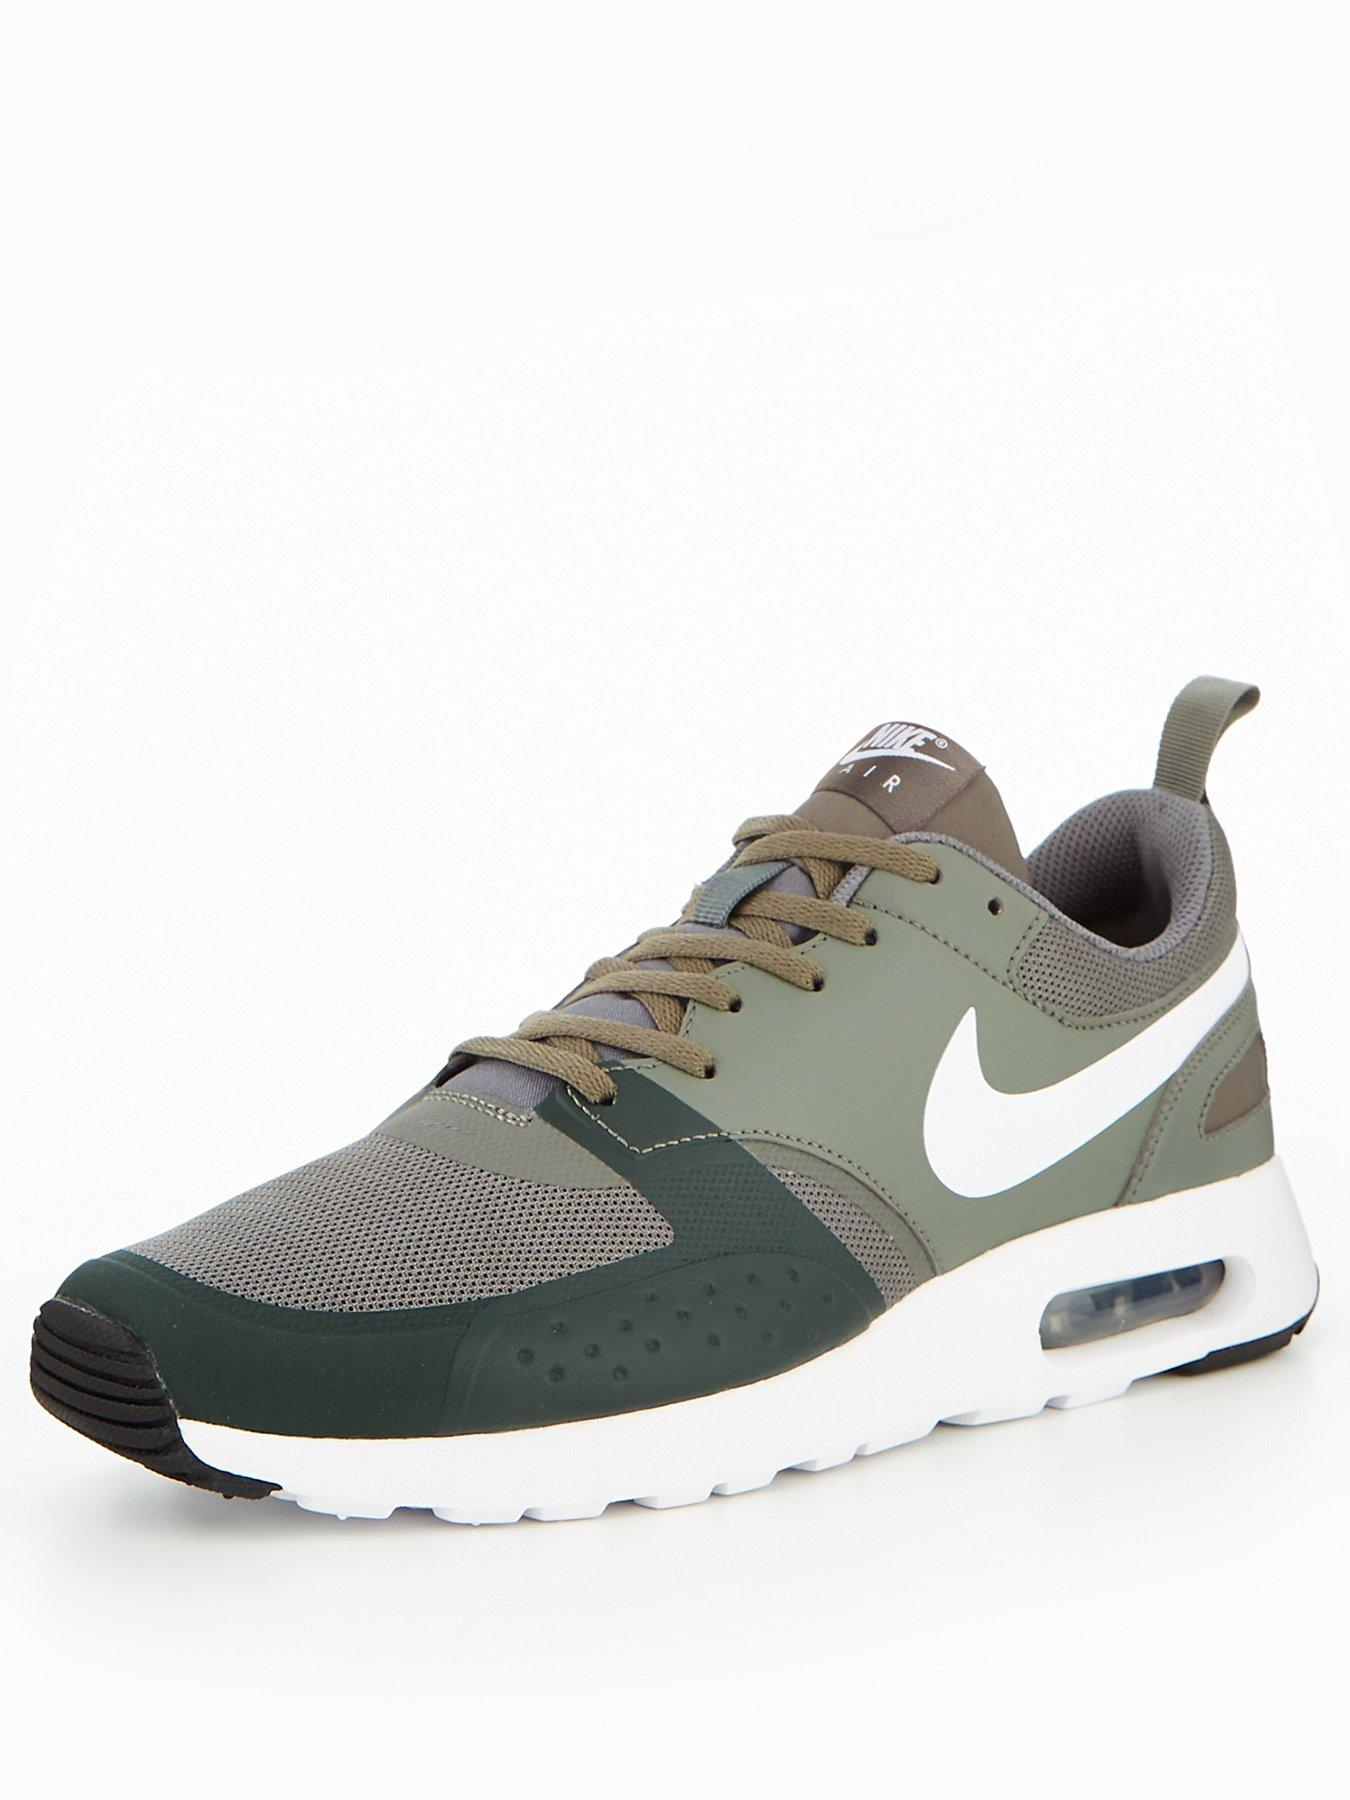 Nike Air Max Vision 1600190758 Men's Shoes Nike Trainers